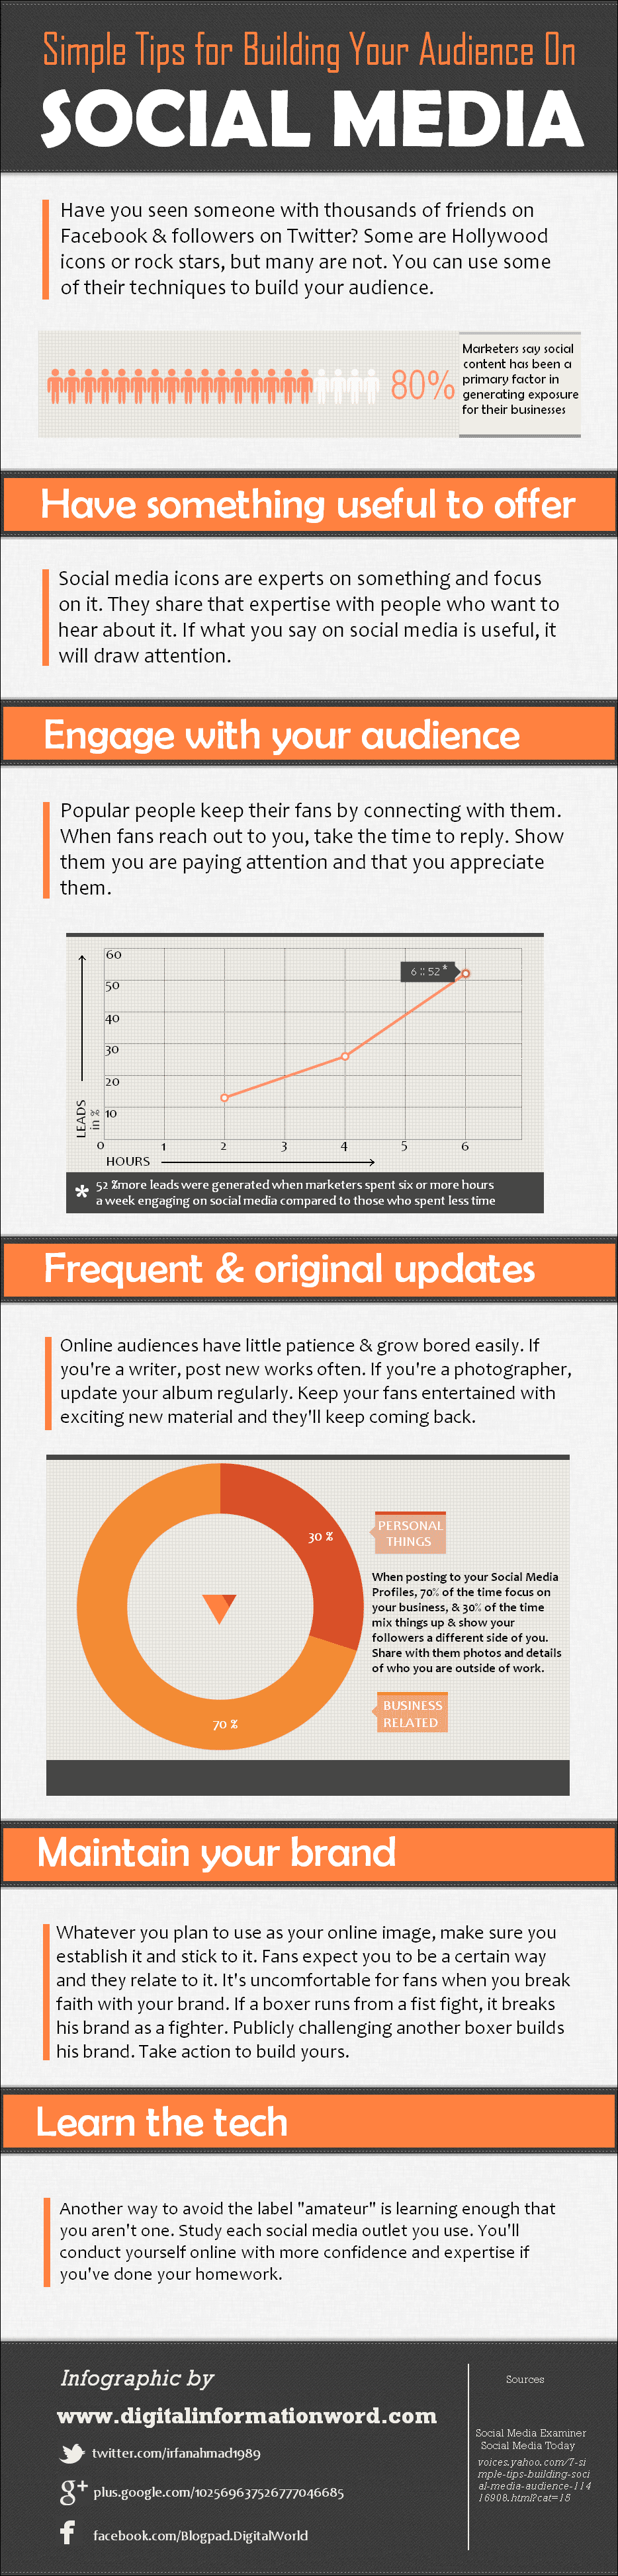 buidling-social-media-audience-infographic